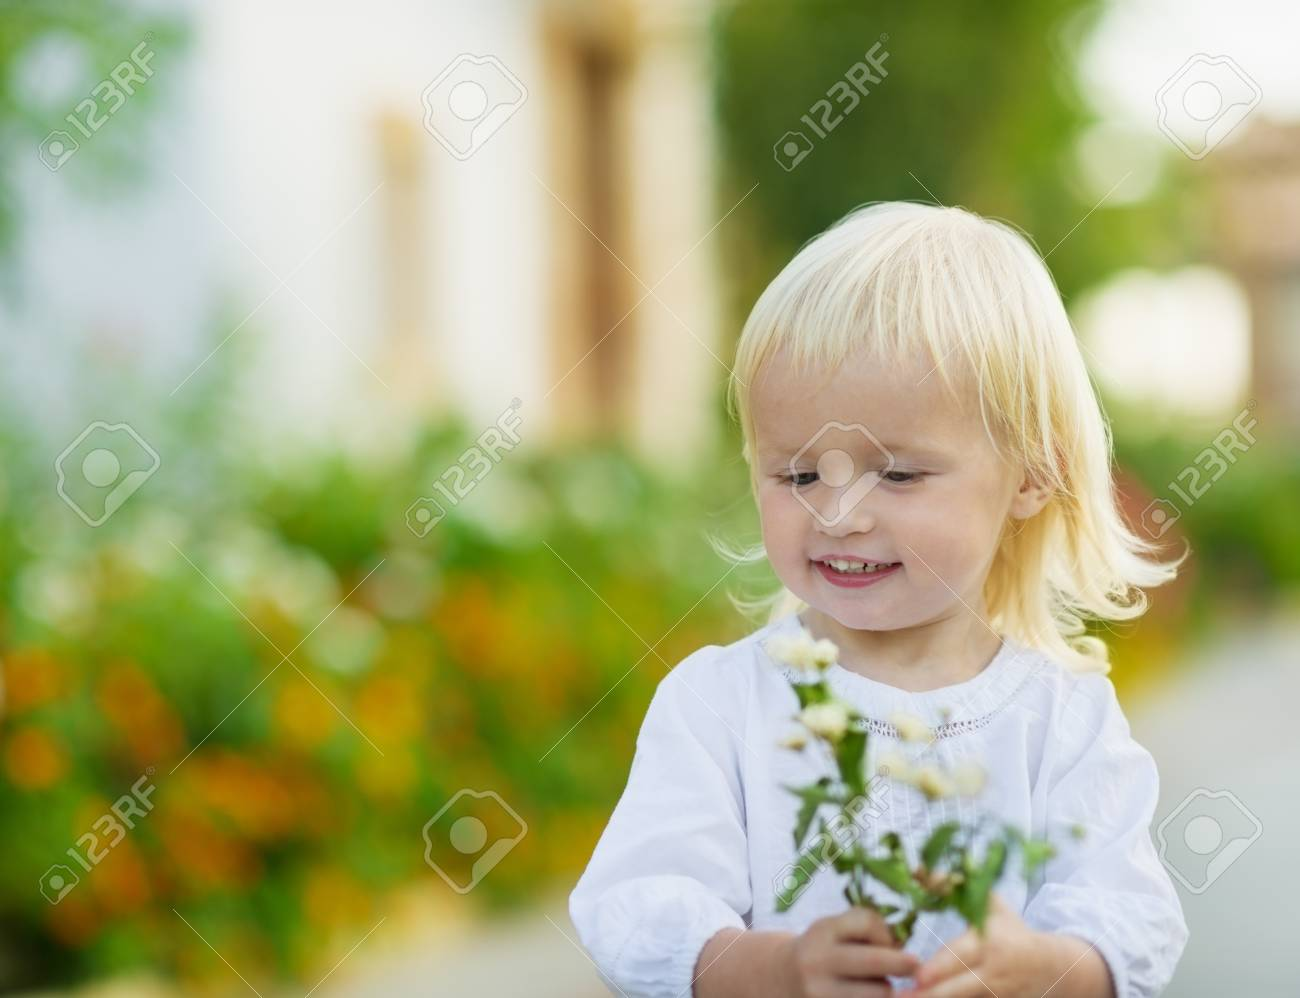 Portrait of baby with flowers outdoors Stock Photo - 15652310